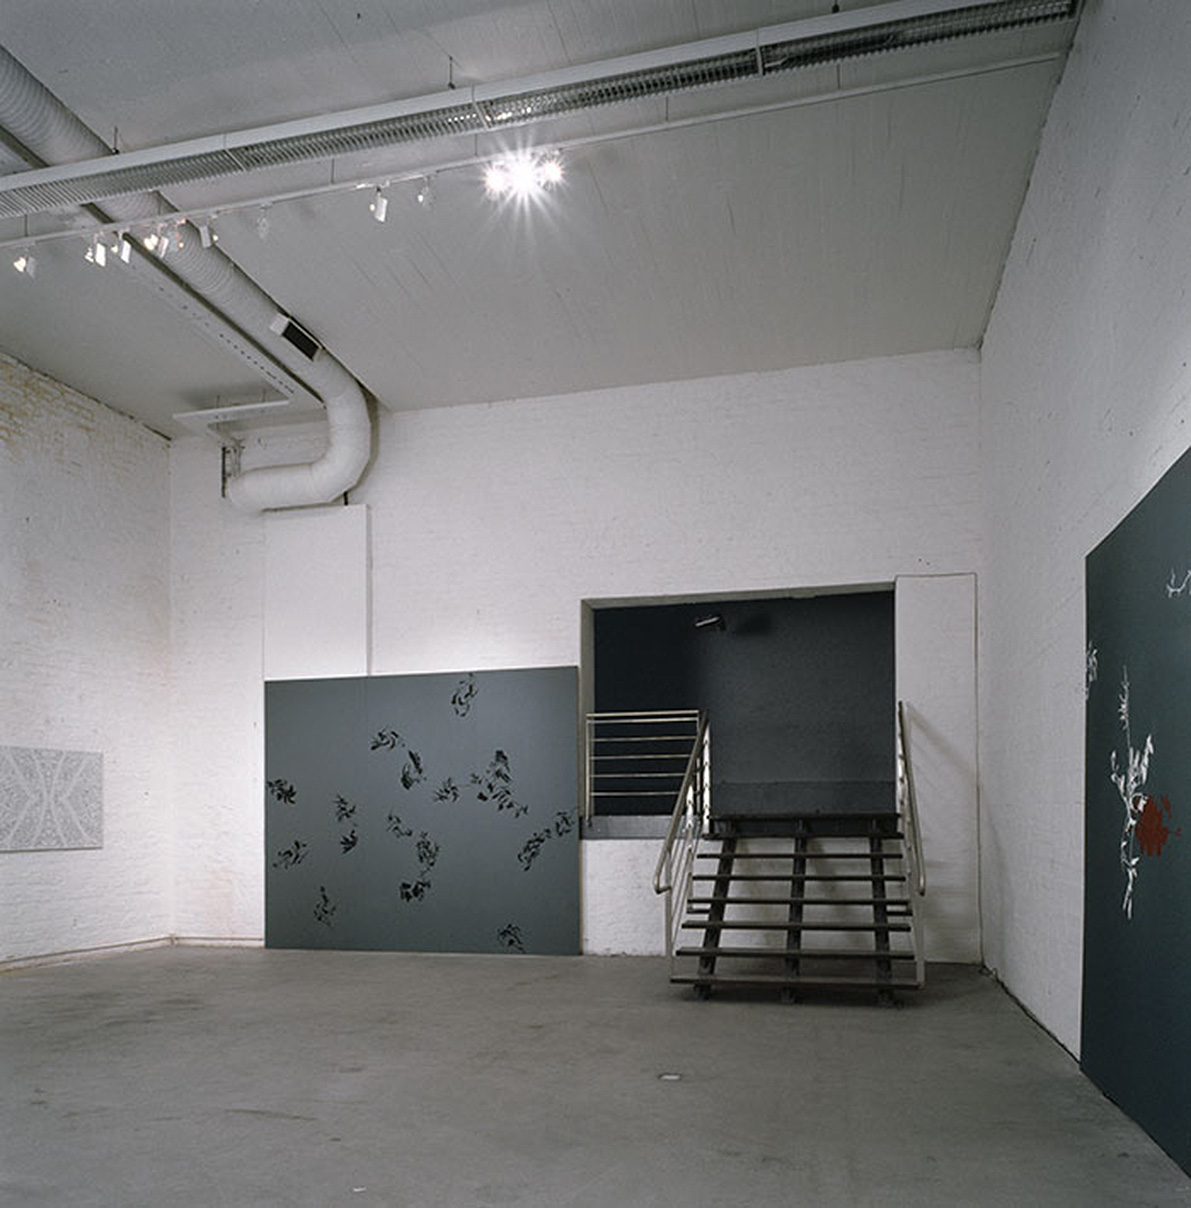 installation view from the exhibition The Last Branch